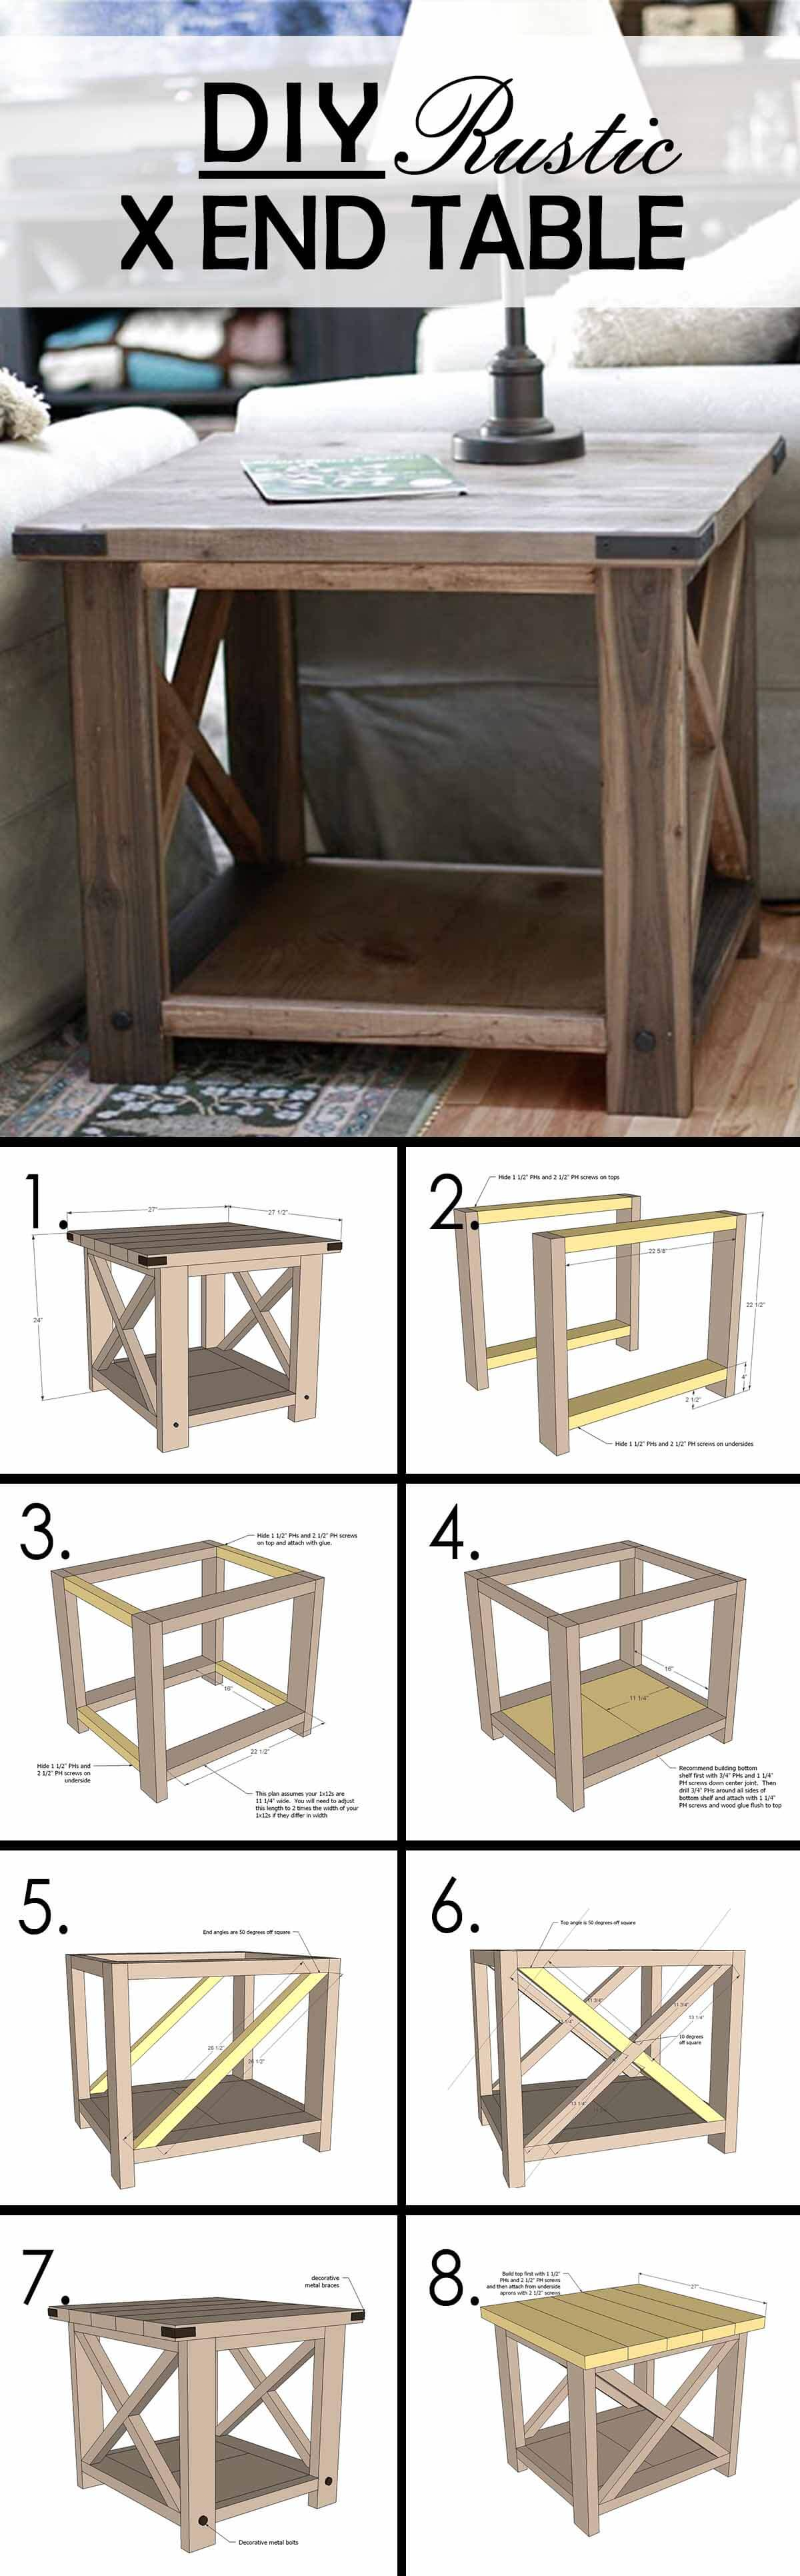 best diy farmhouse coffee table ideas and designs for homebnc rustic accent build your own cube end tables cordless led lamp skinny couch small lamps wicker chair set navy blue